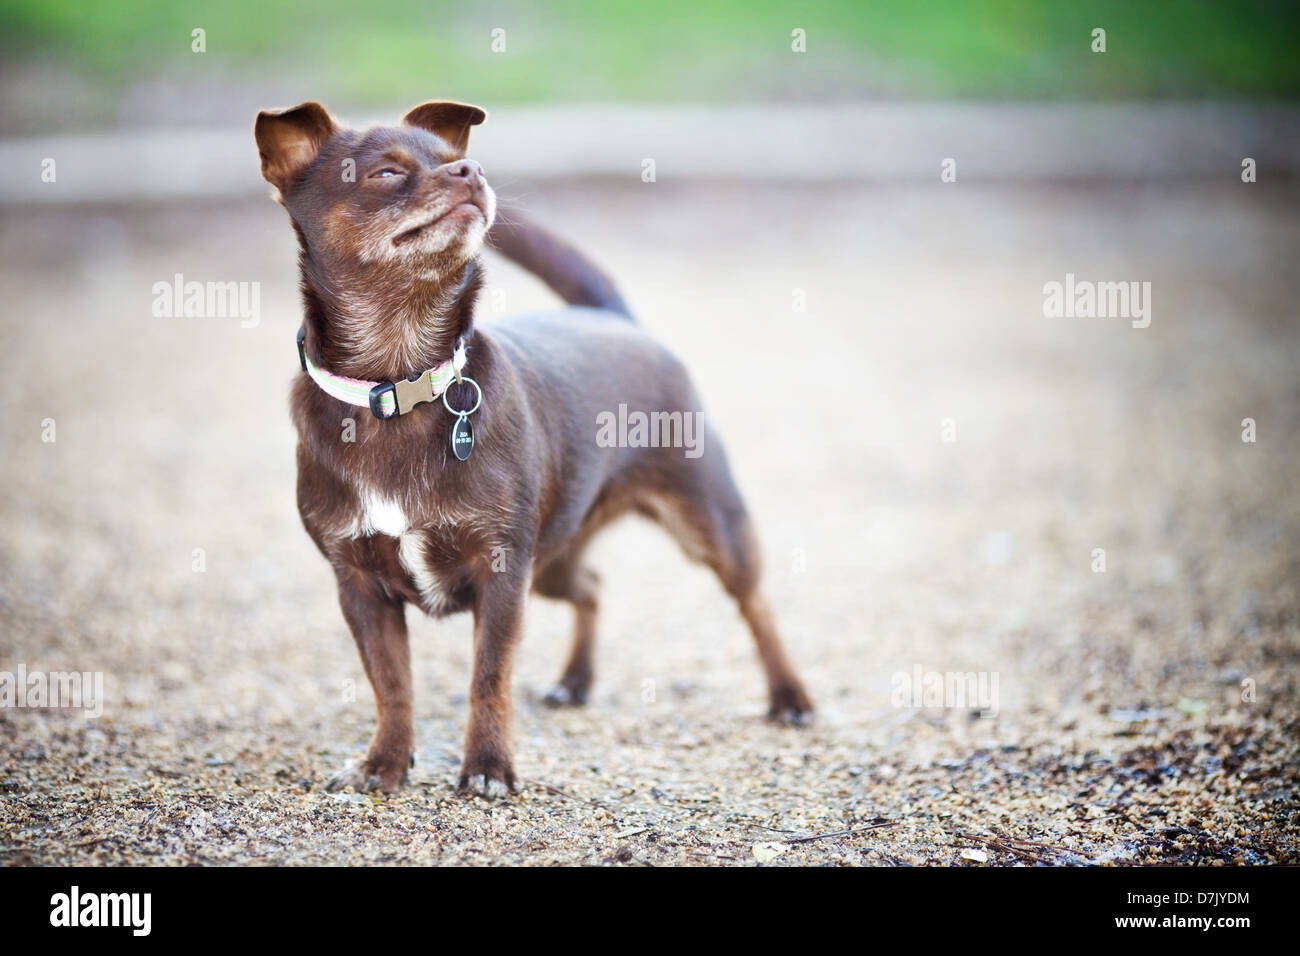 Brown chihuahua dog outdoors looking up - Stock Image